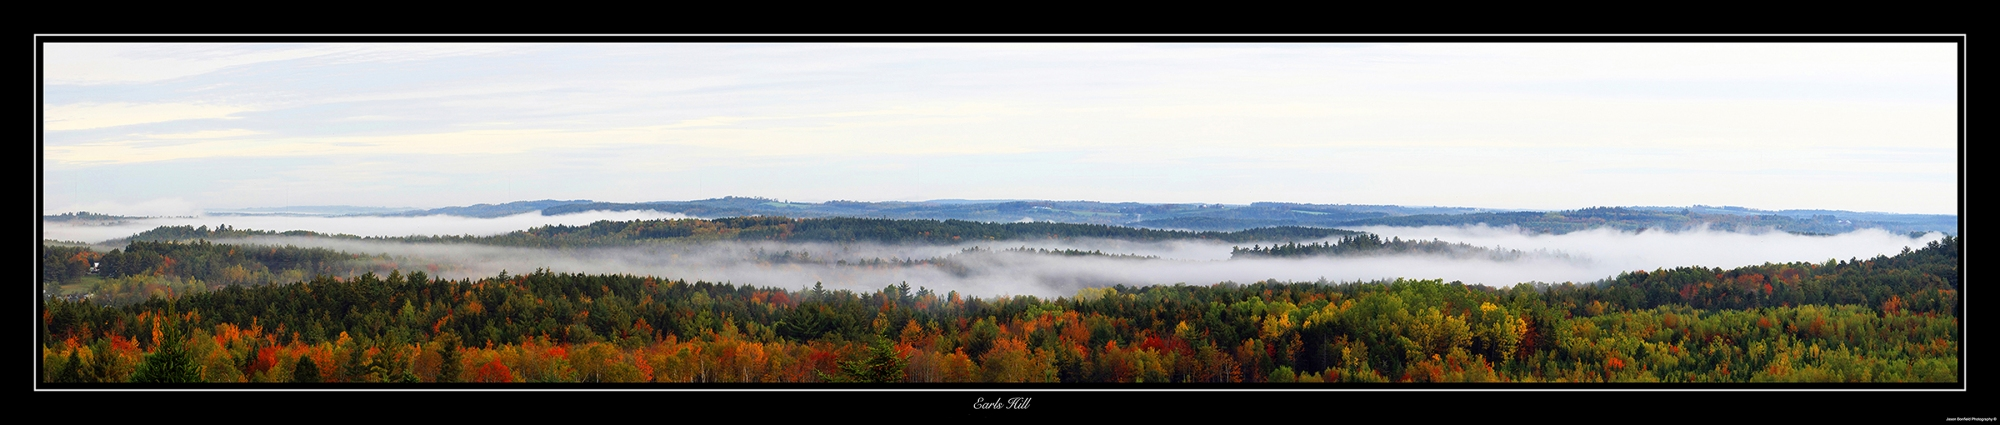 Panoramic landscape picture of Maples trees in autumn with a misty cloud taken in Lunenburg Country, Nova Scotia, Canada.